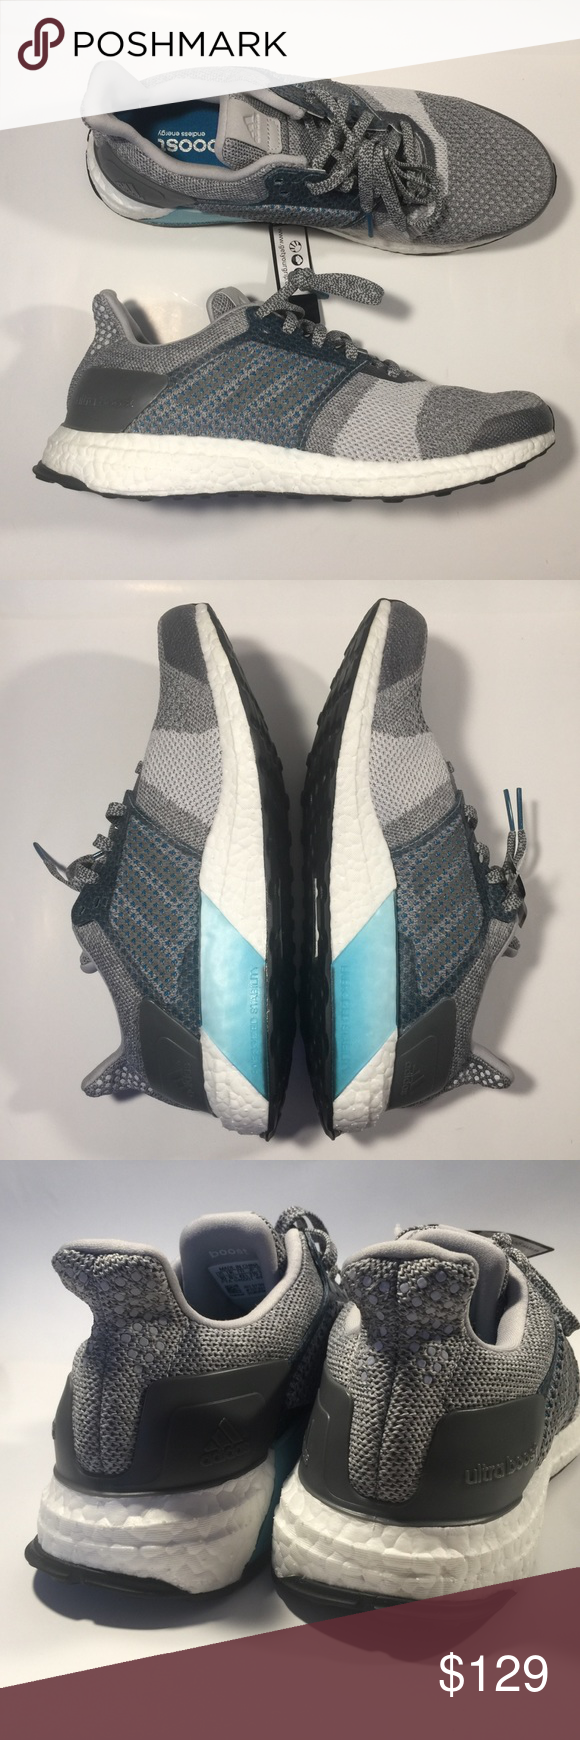 3ec52a6cf635f NWT Adidas ultraboost st shoes womens 10 Brand new never worn no box art  code by 1900 can fit mens size 9 very comfortable boost shoes! adidas Shoes  ...